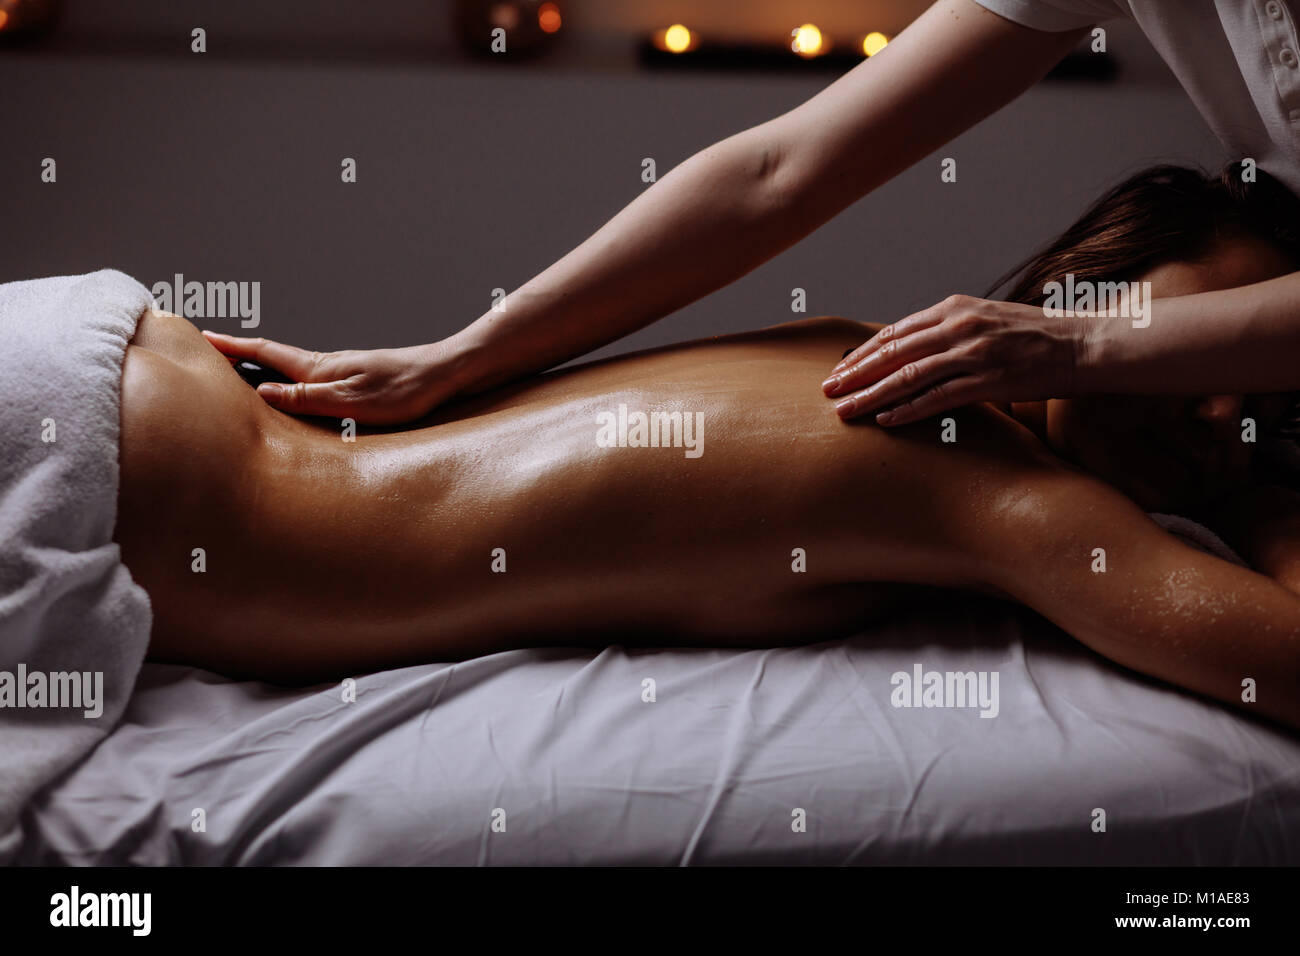 young Woman getting hot stone massage at spa salon - Stock Image